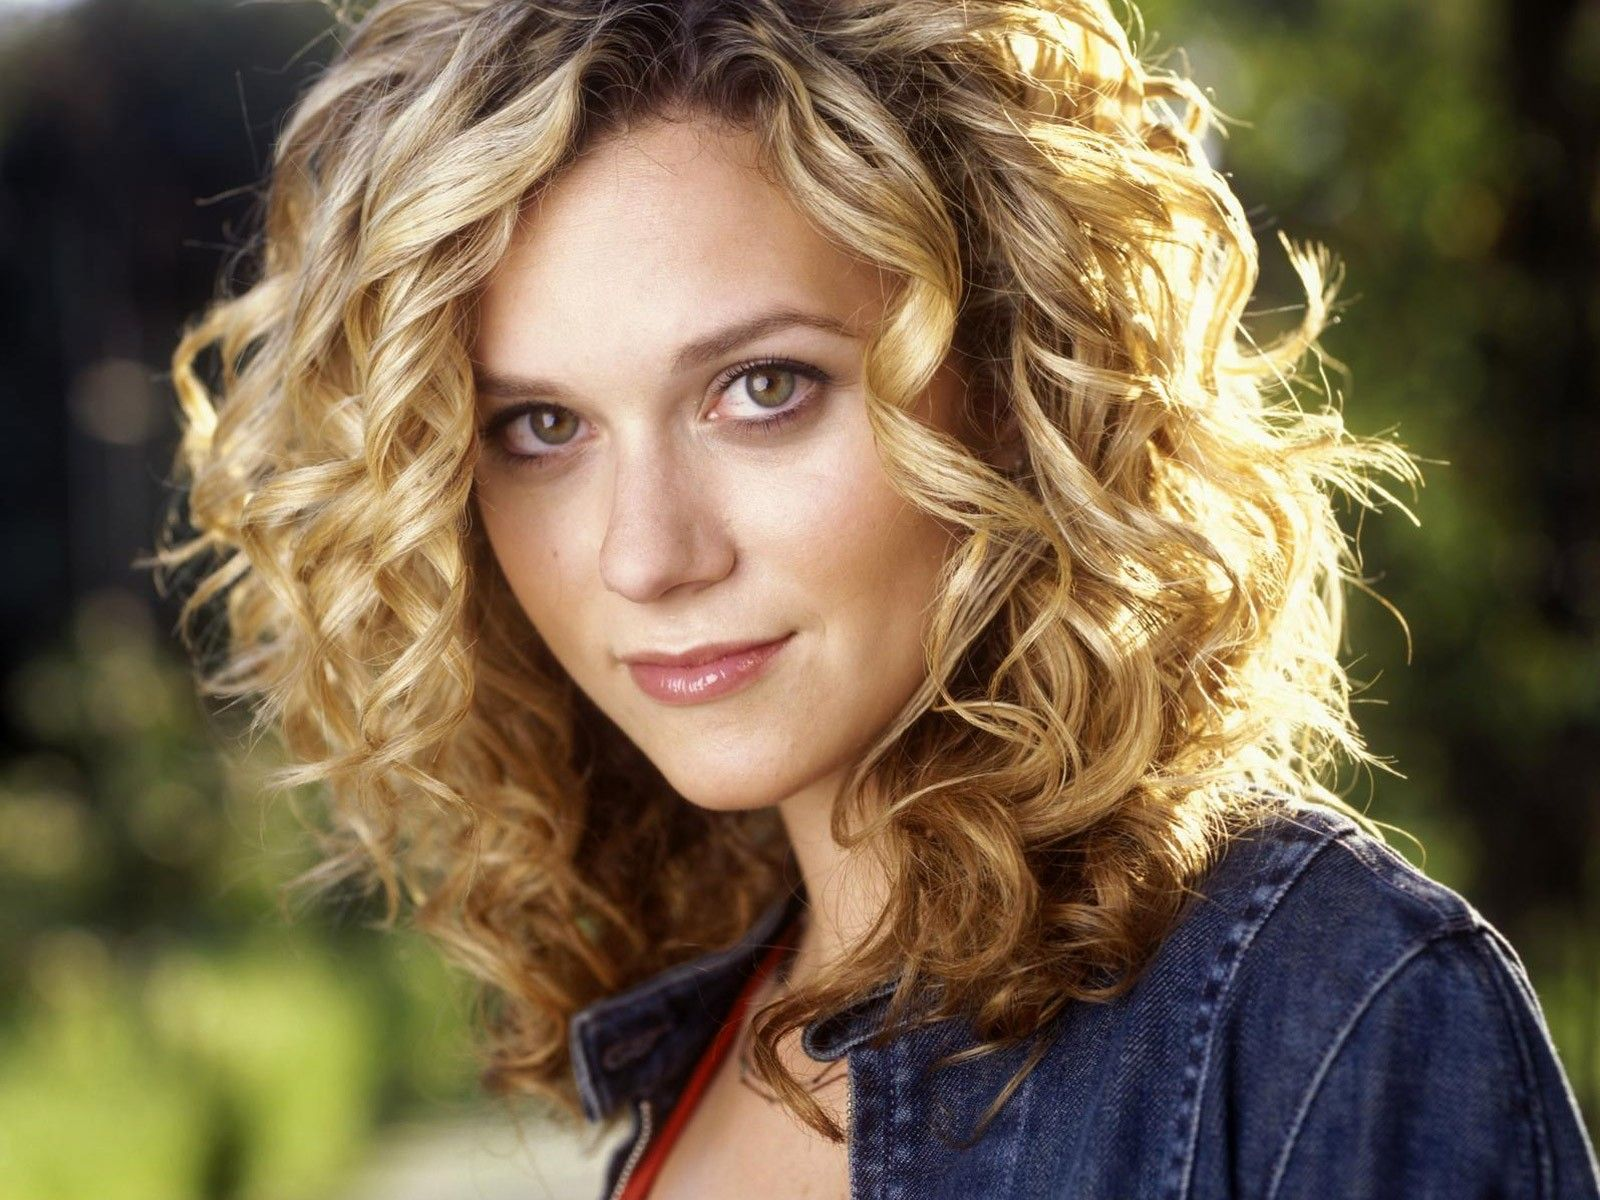 hilarie burton hair cuts   ... hair wallpapers, photo, images, picture (Curly hair Hilarie Burton)  I love her curly hair